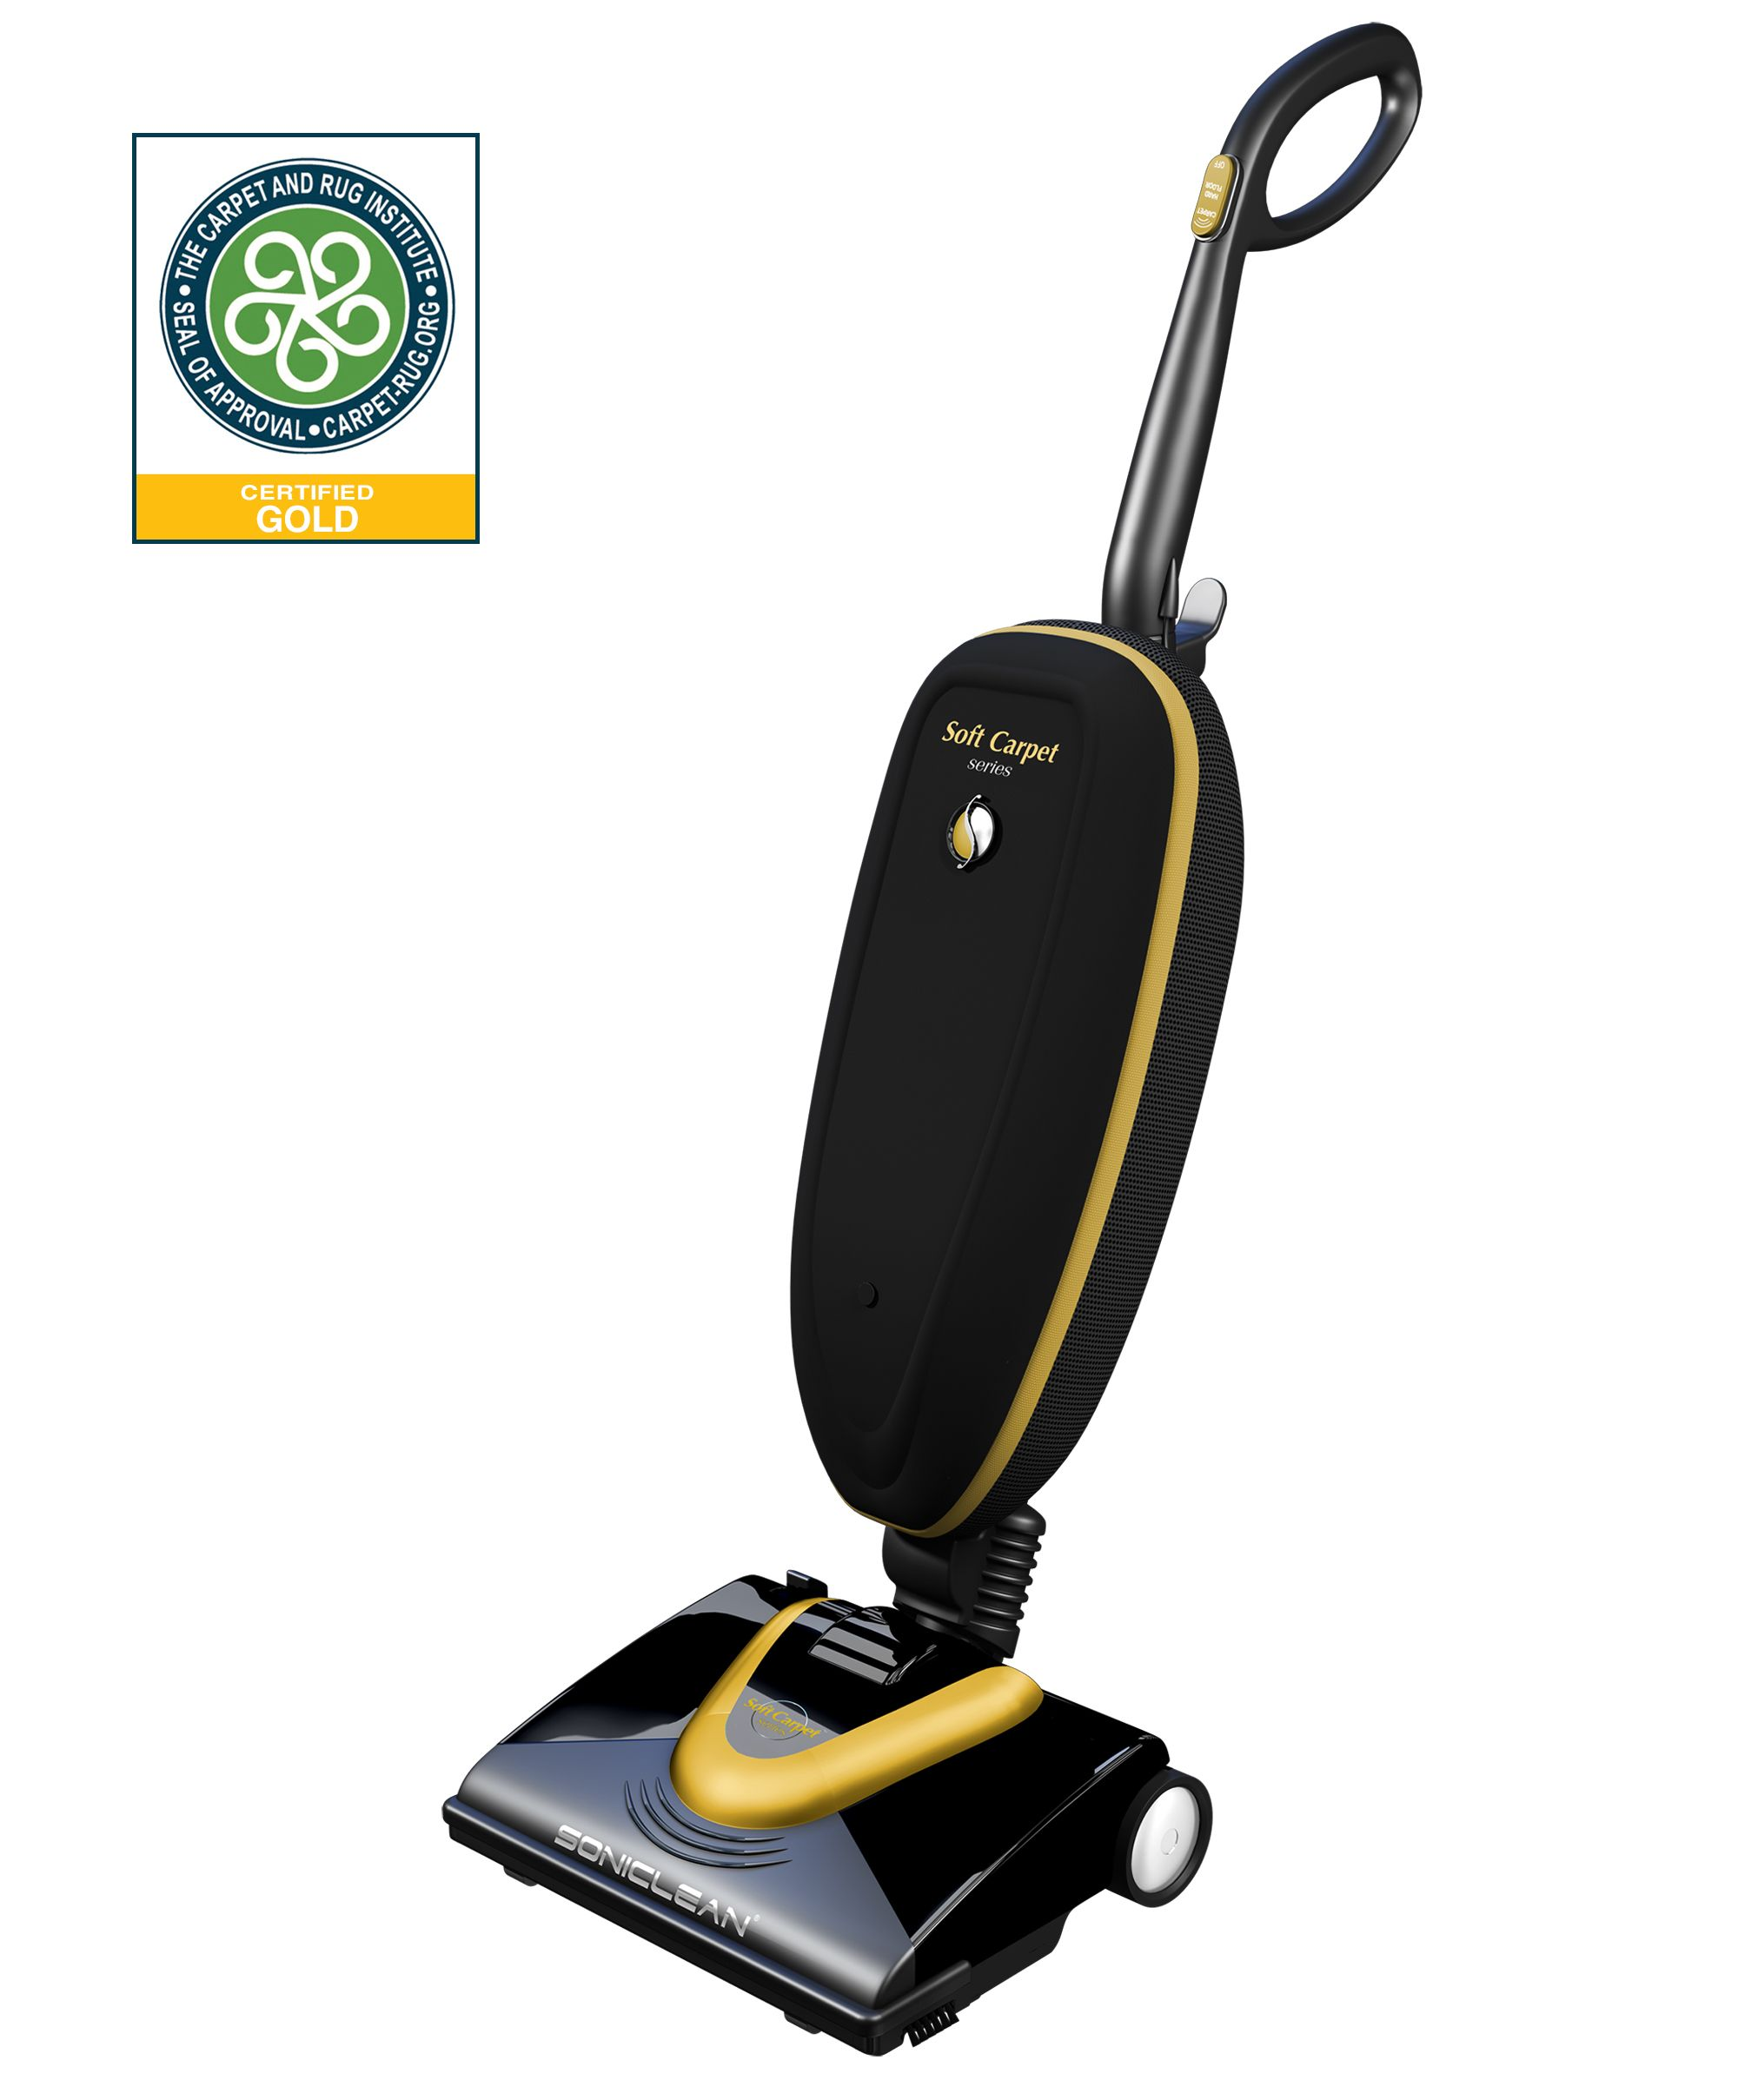 Carpet Cleaning Vacuum Soniclean Soft Carpet Upright Vacuum With Sonic Cleaning Technology